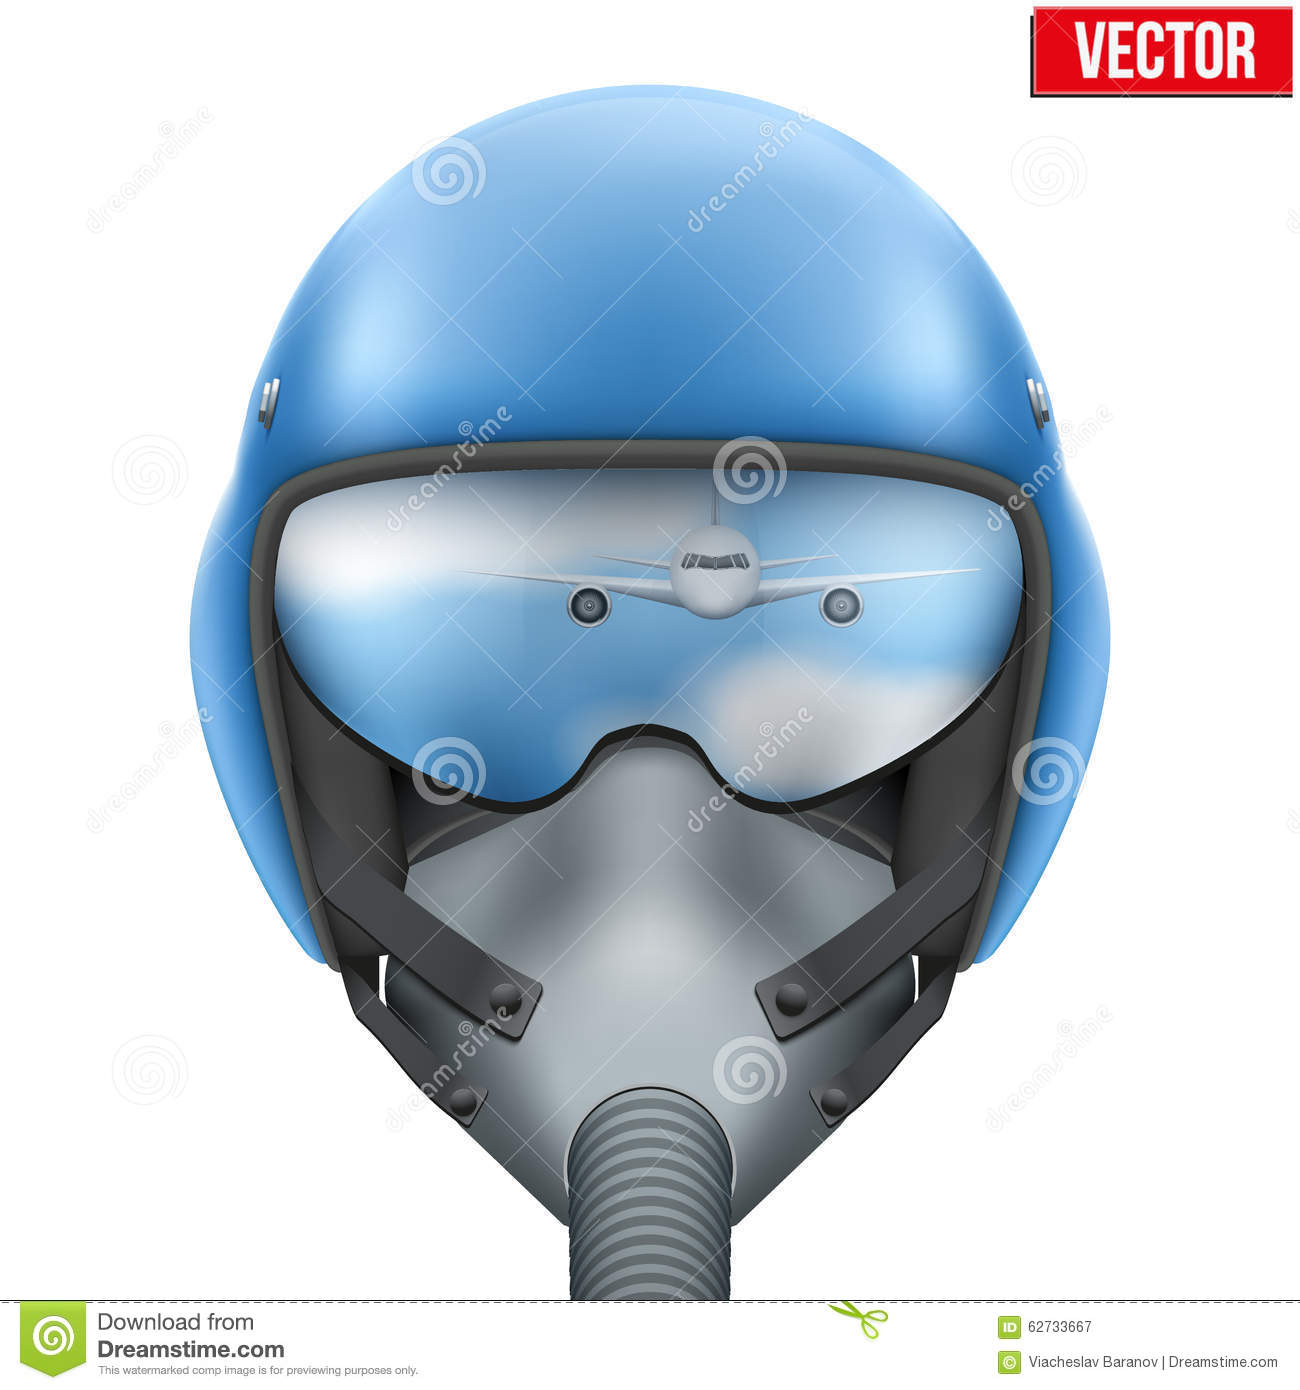 helicopter pilot helmet with Stock Illustration Military Flight Fighter Pilot Helmet Vector Blue Air Force Oxygen Mask Illustration Isolated White Background Image62733667 on F 35 Joint Strike Fighter Jsf Lightning as well Helmets7 furthermore 2010 10 01 archive additionally Index furthermore Stock Illustration Military Flight Fighter Pilot Helmet Vector Blue Air Force Oxygen Mask Illustration Isolated White Background Image62733667.